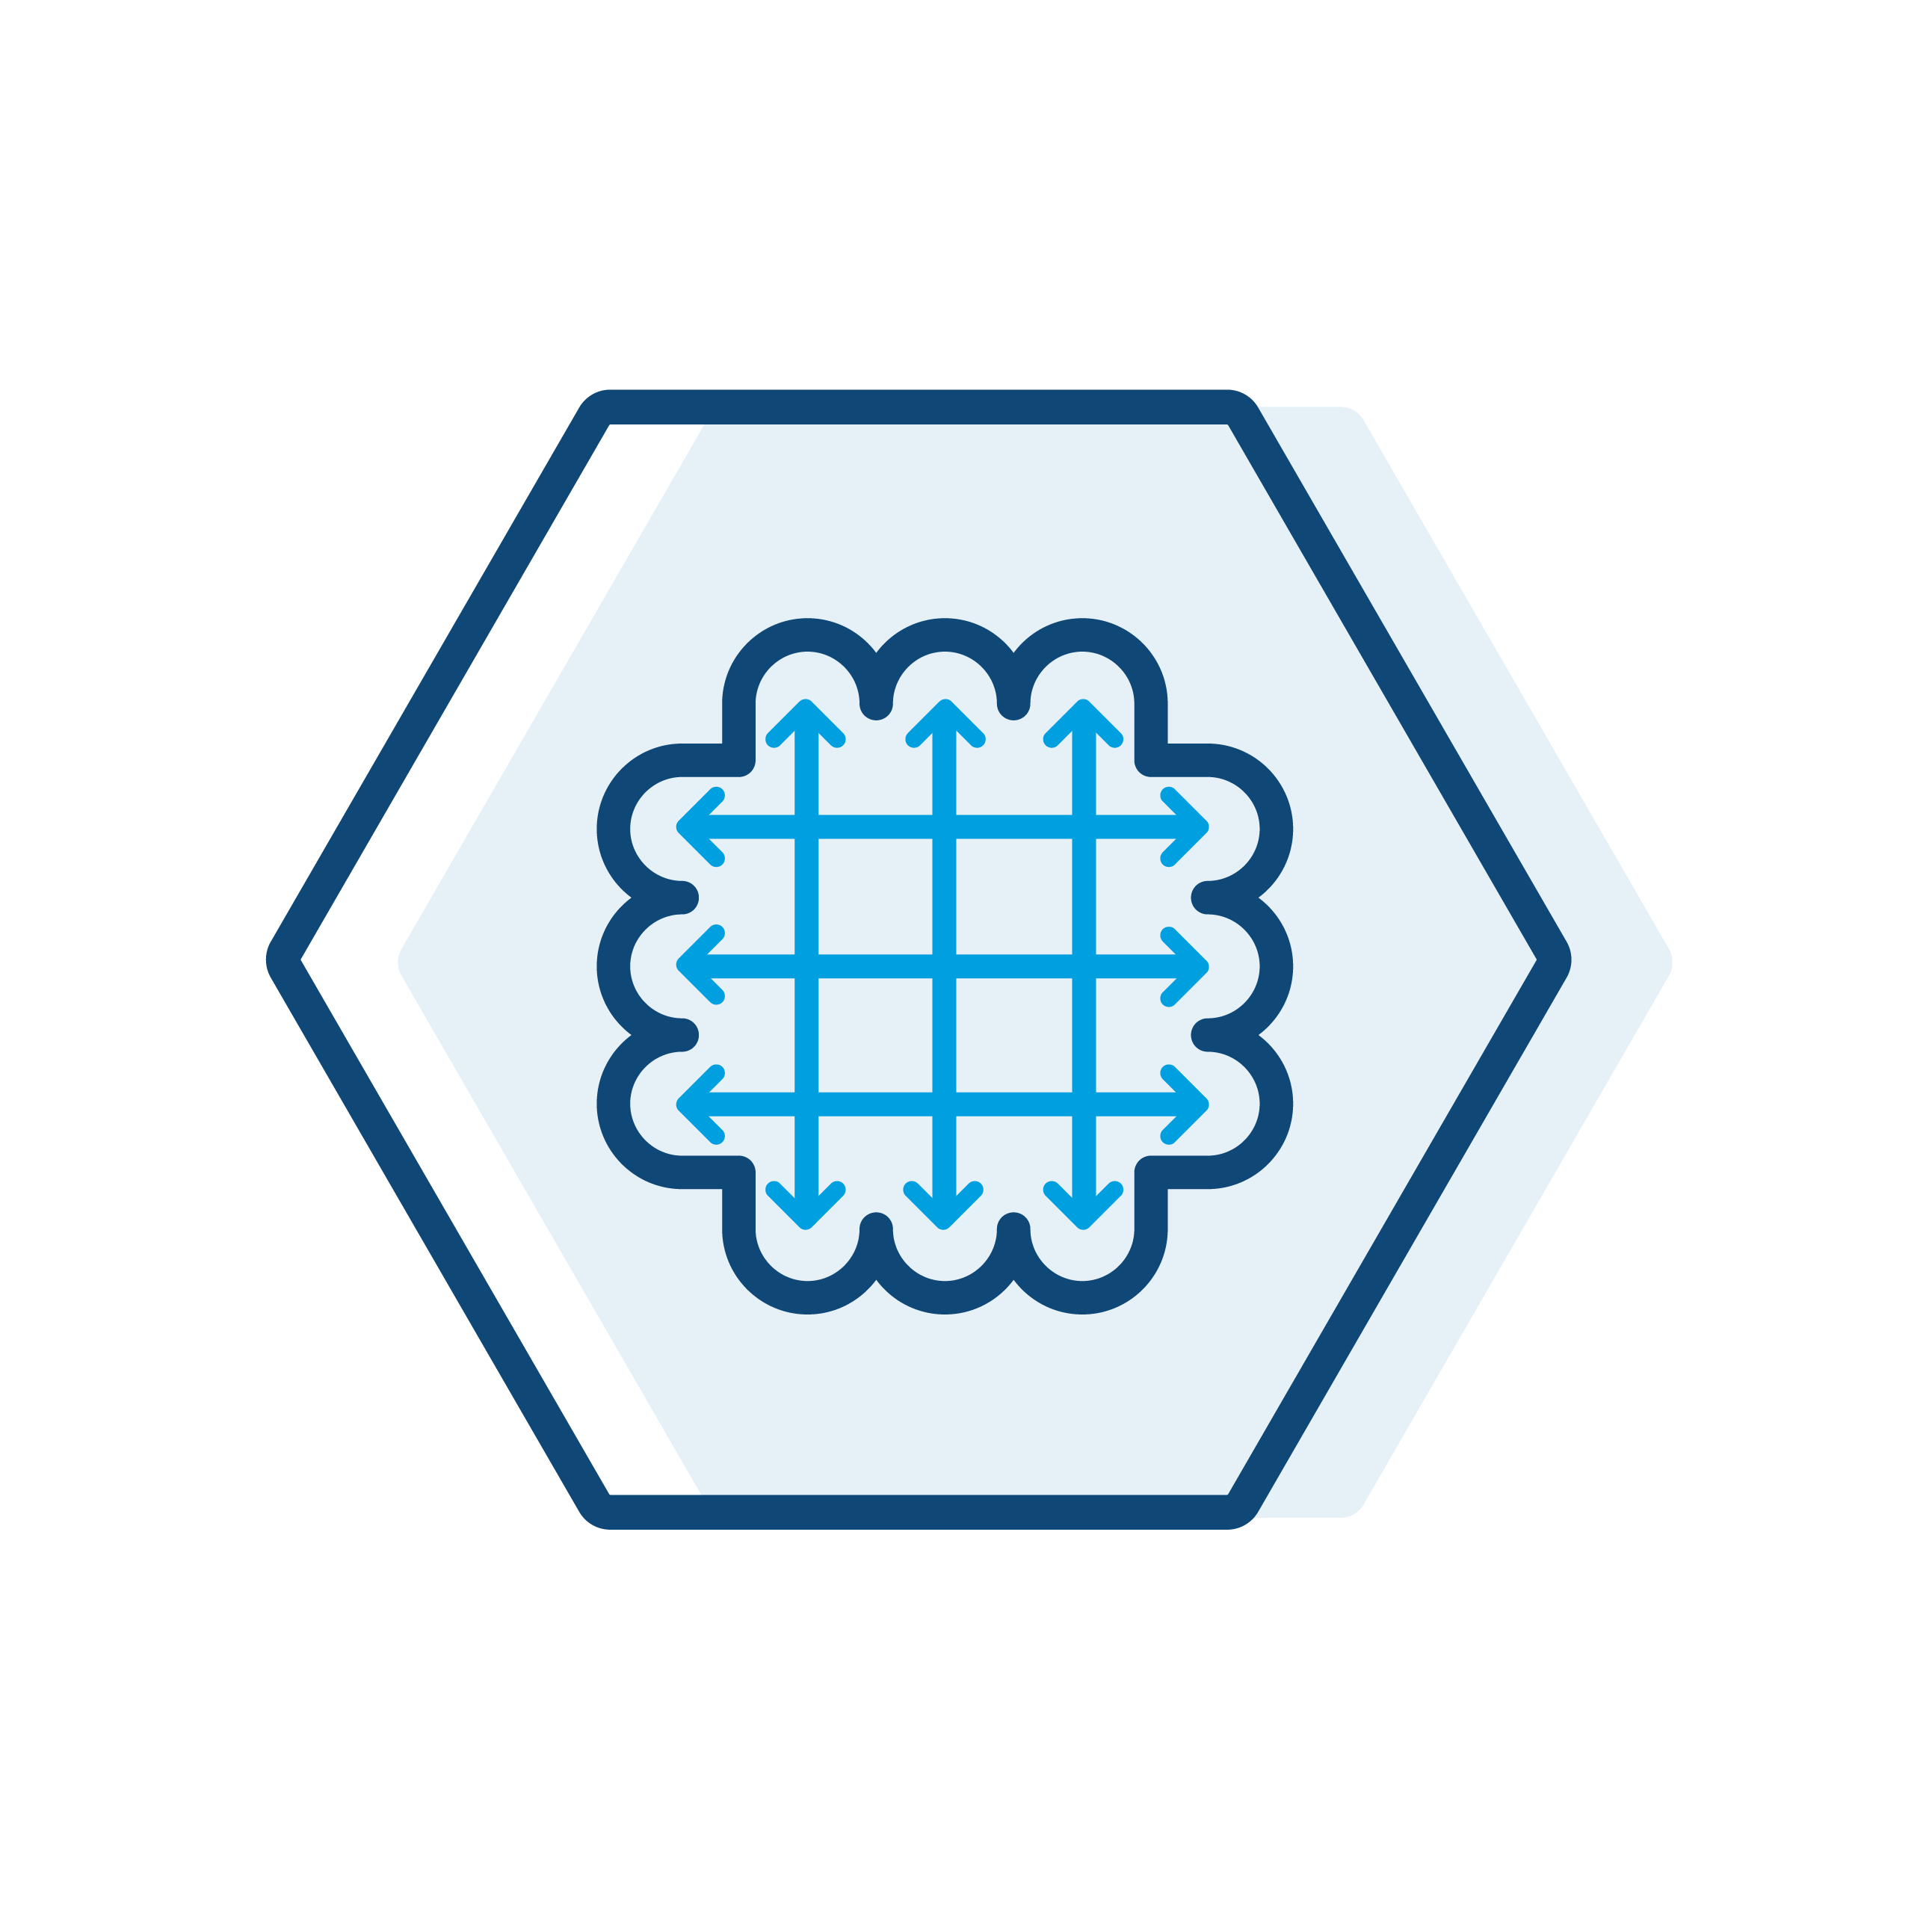 HEXI PREP Icon - Simple to use